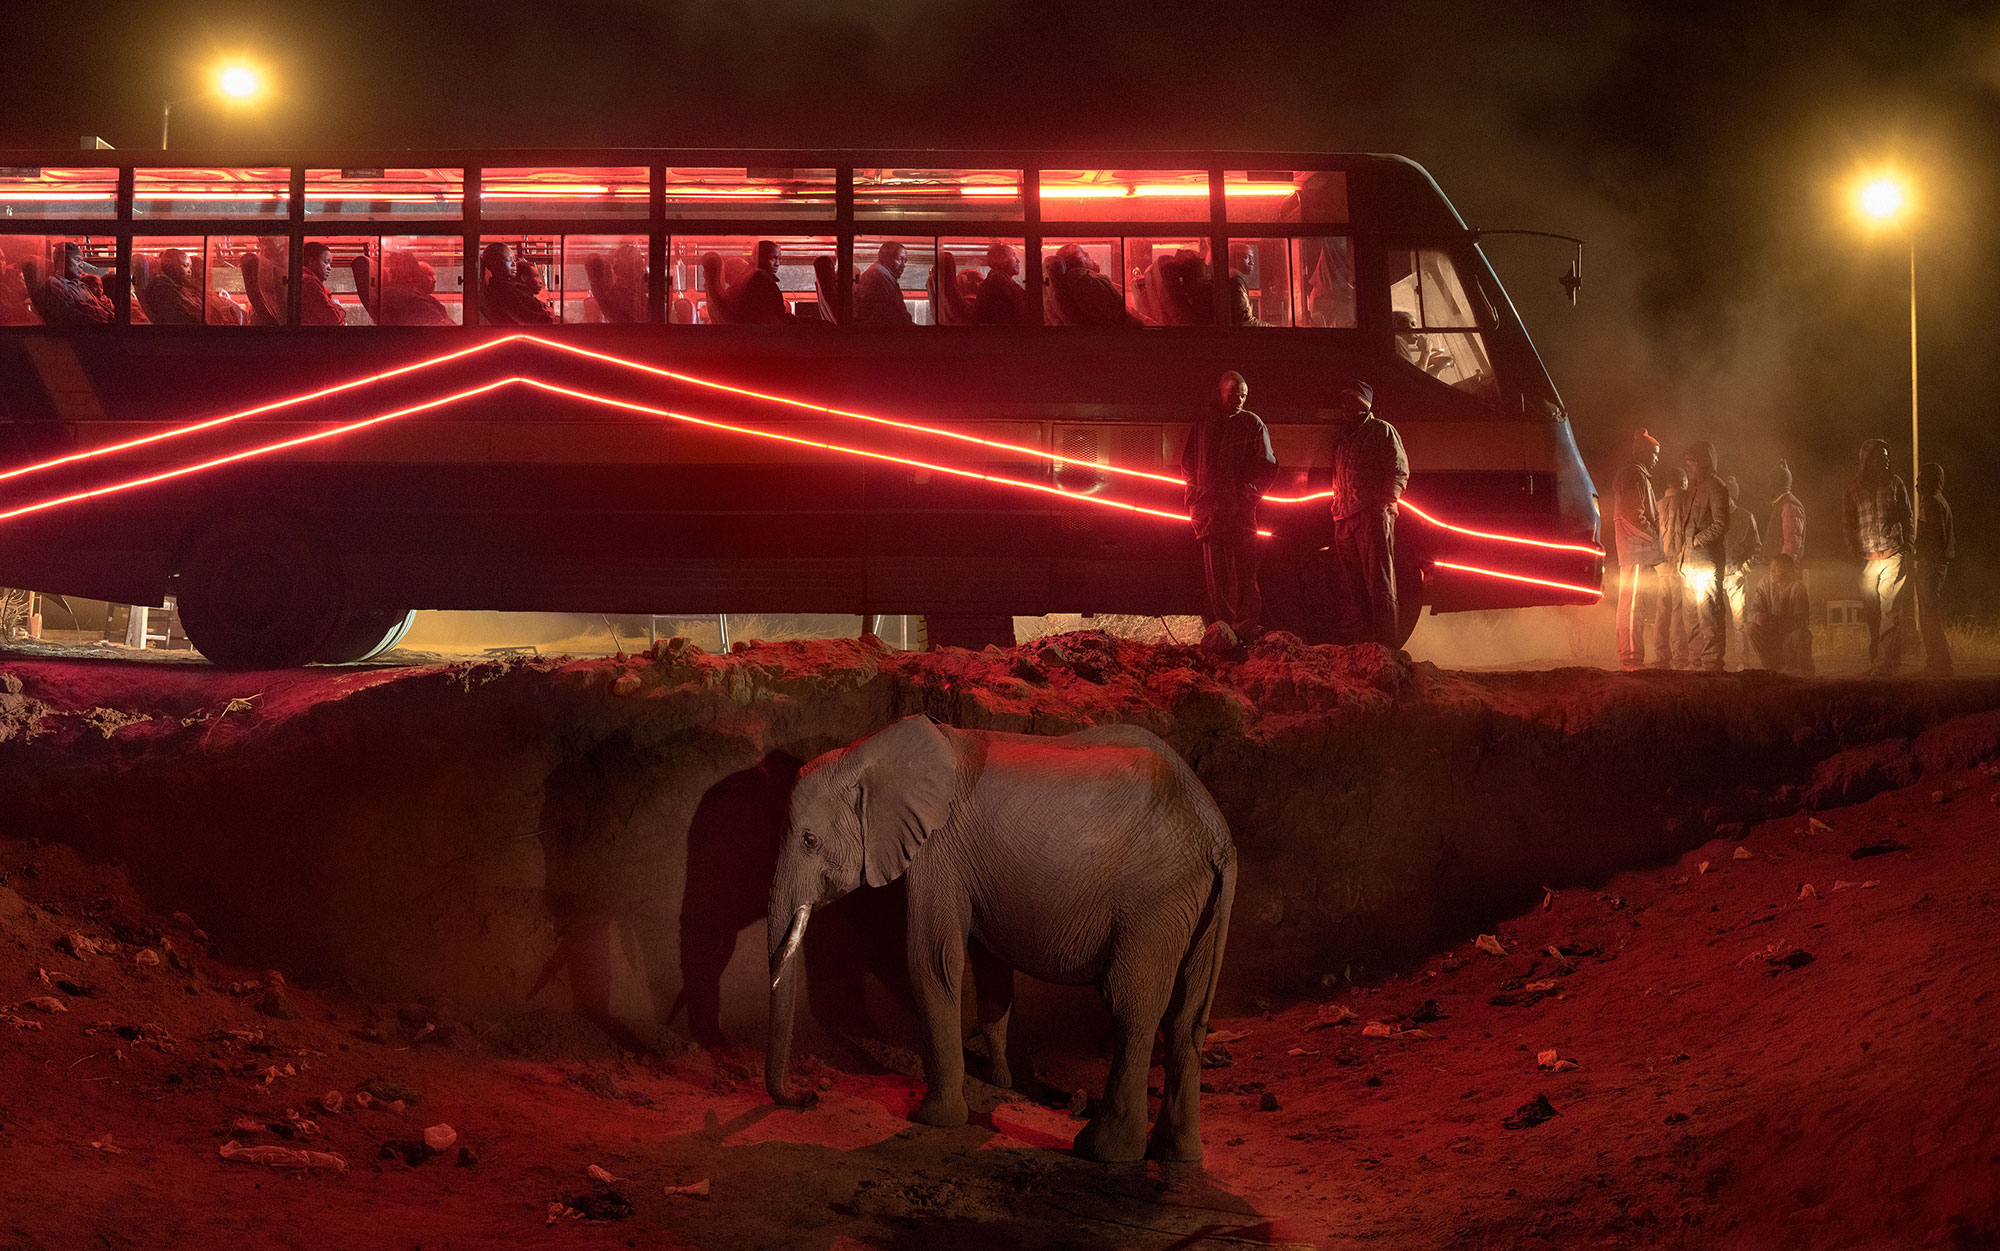 3e-BUS-STATION-WITH-ELEPHANT-&-RED-BUS-2000px